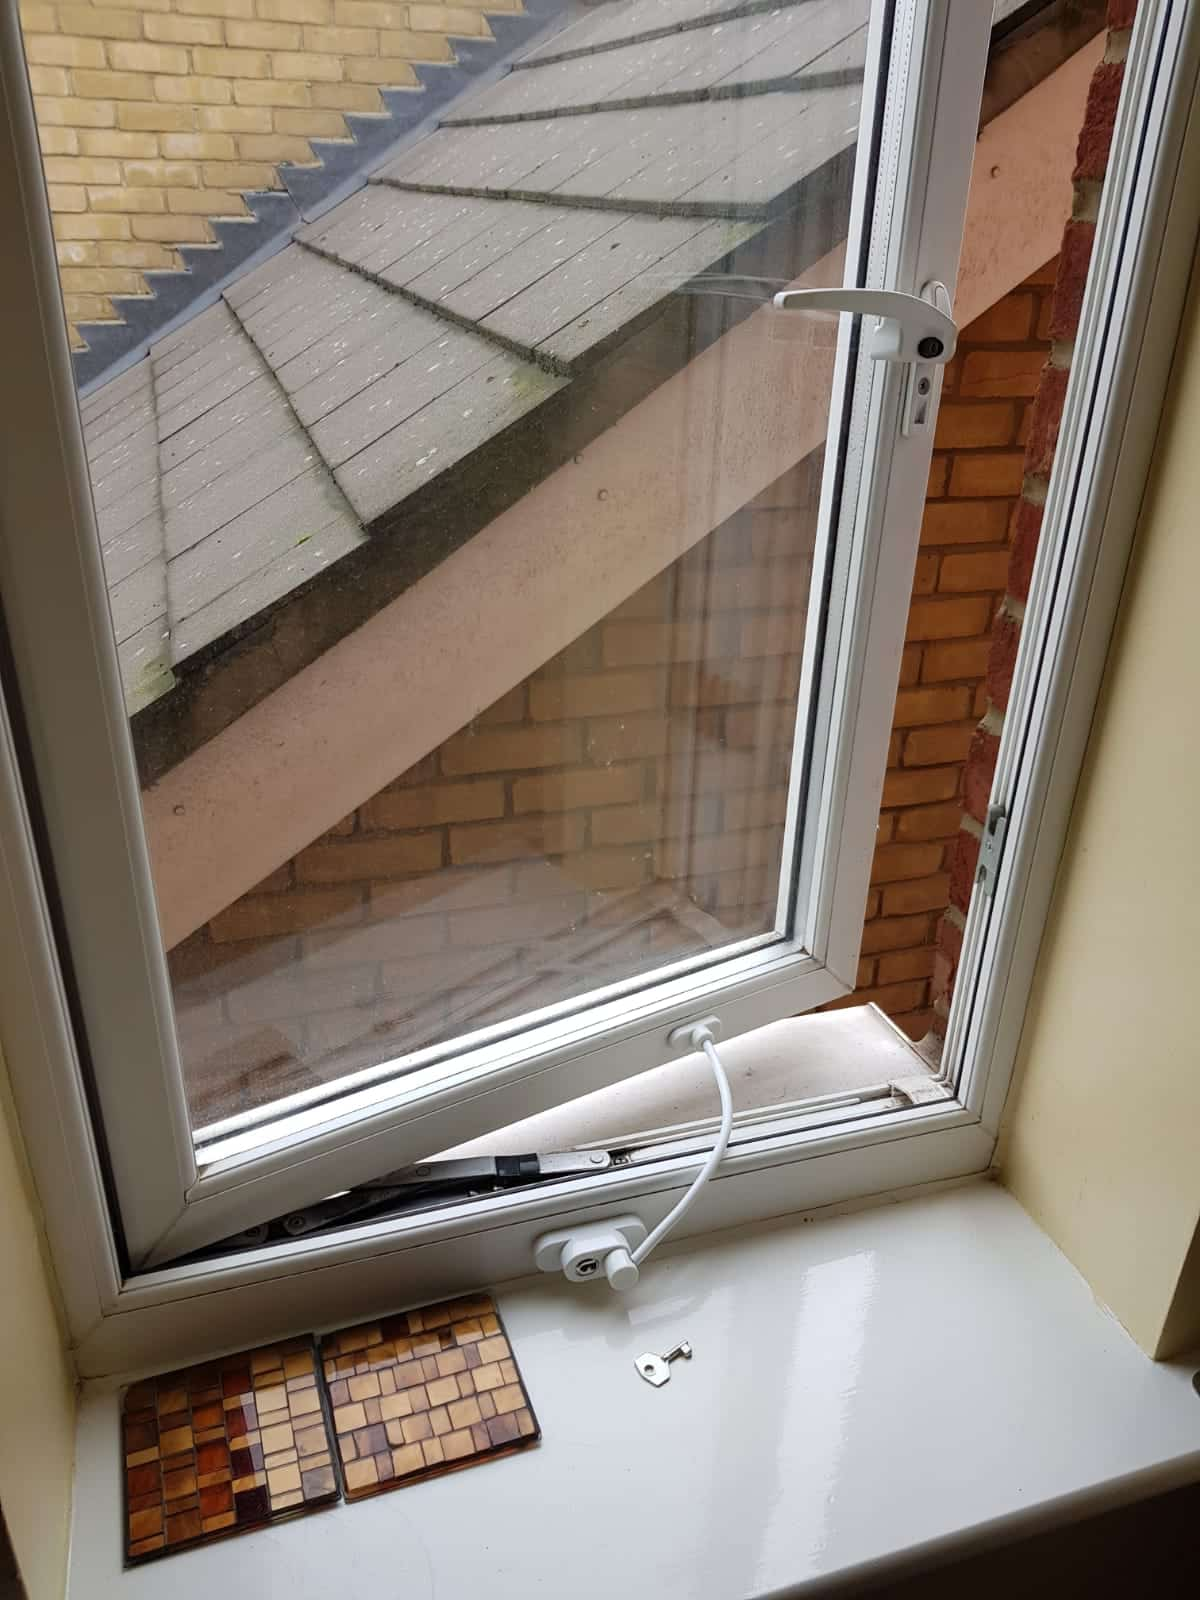 Child safety window catch fitted after photograph